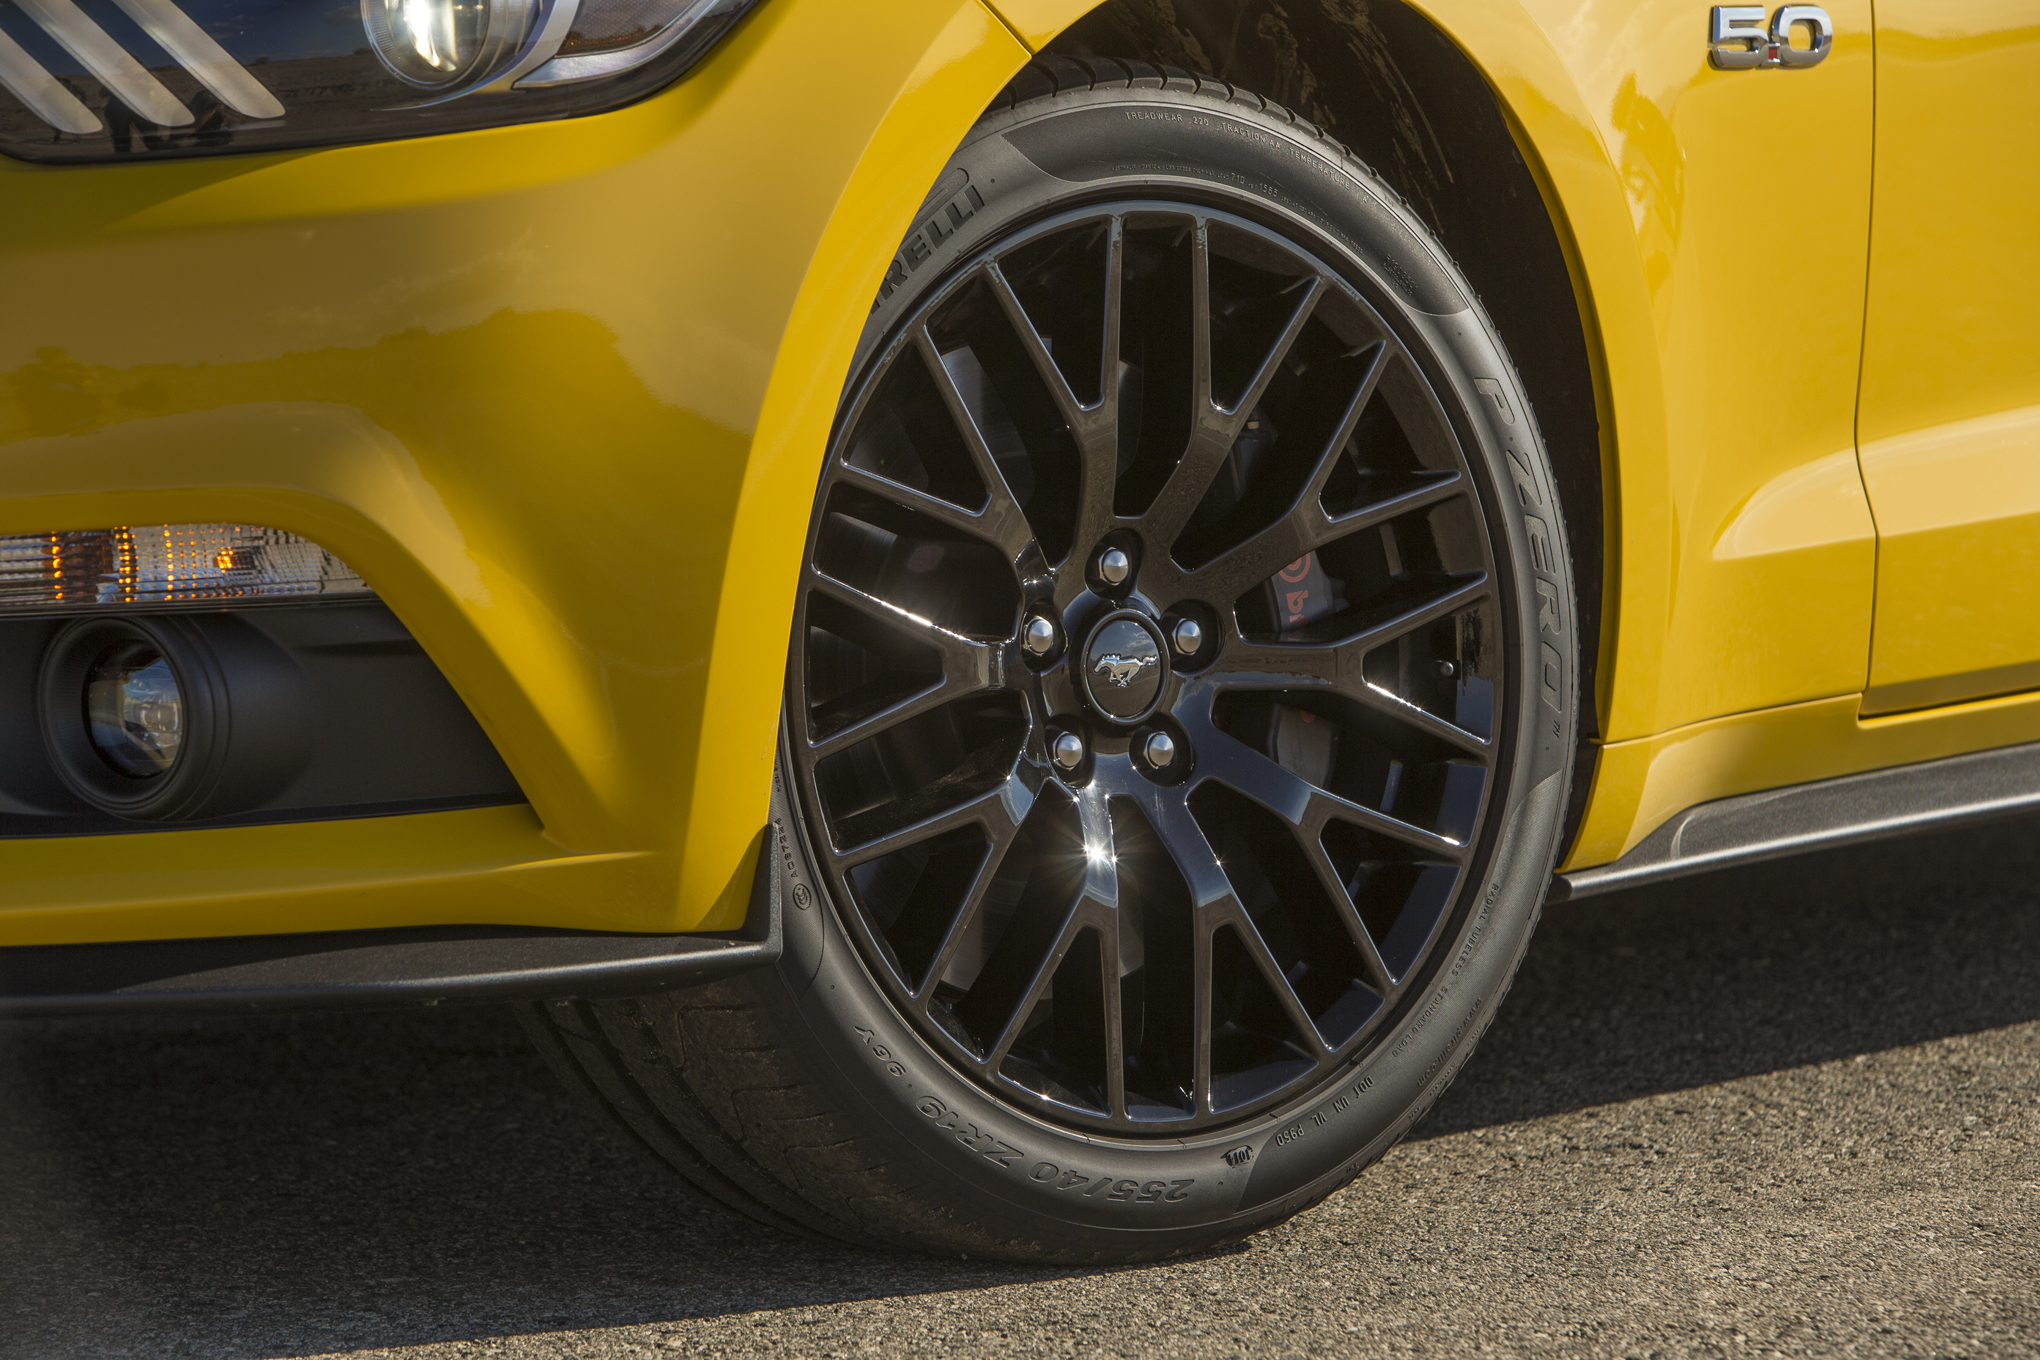 2015 Ford Mustang Gt Wheel (Photo 21 of 30)